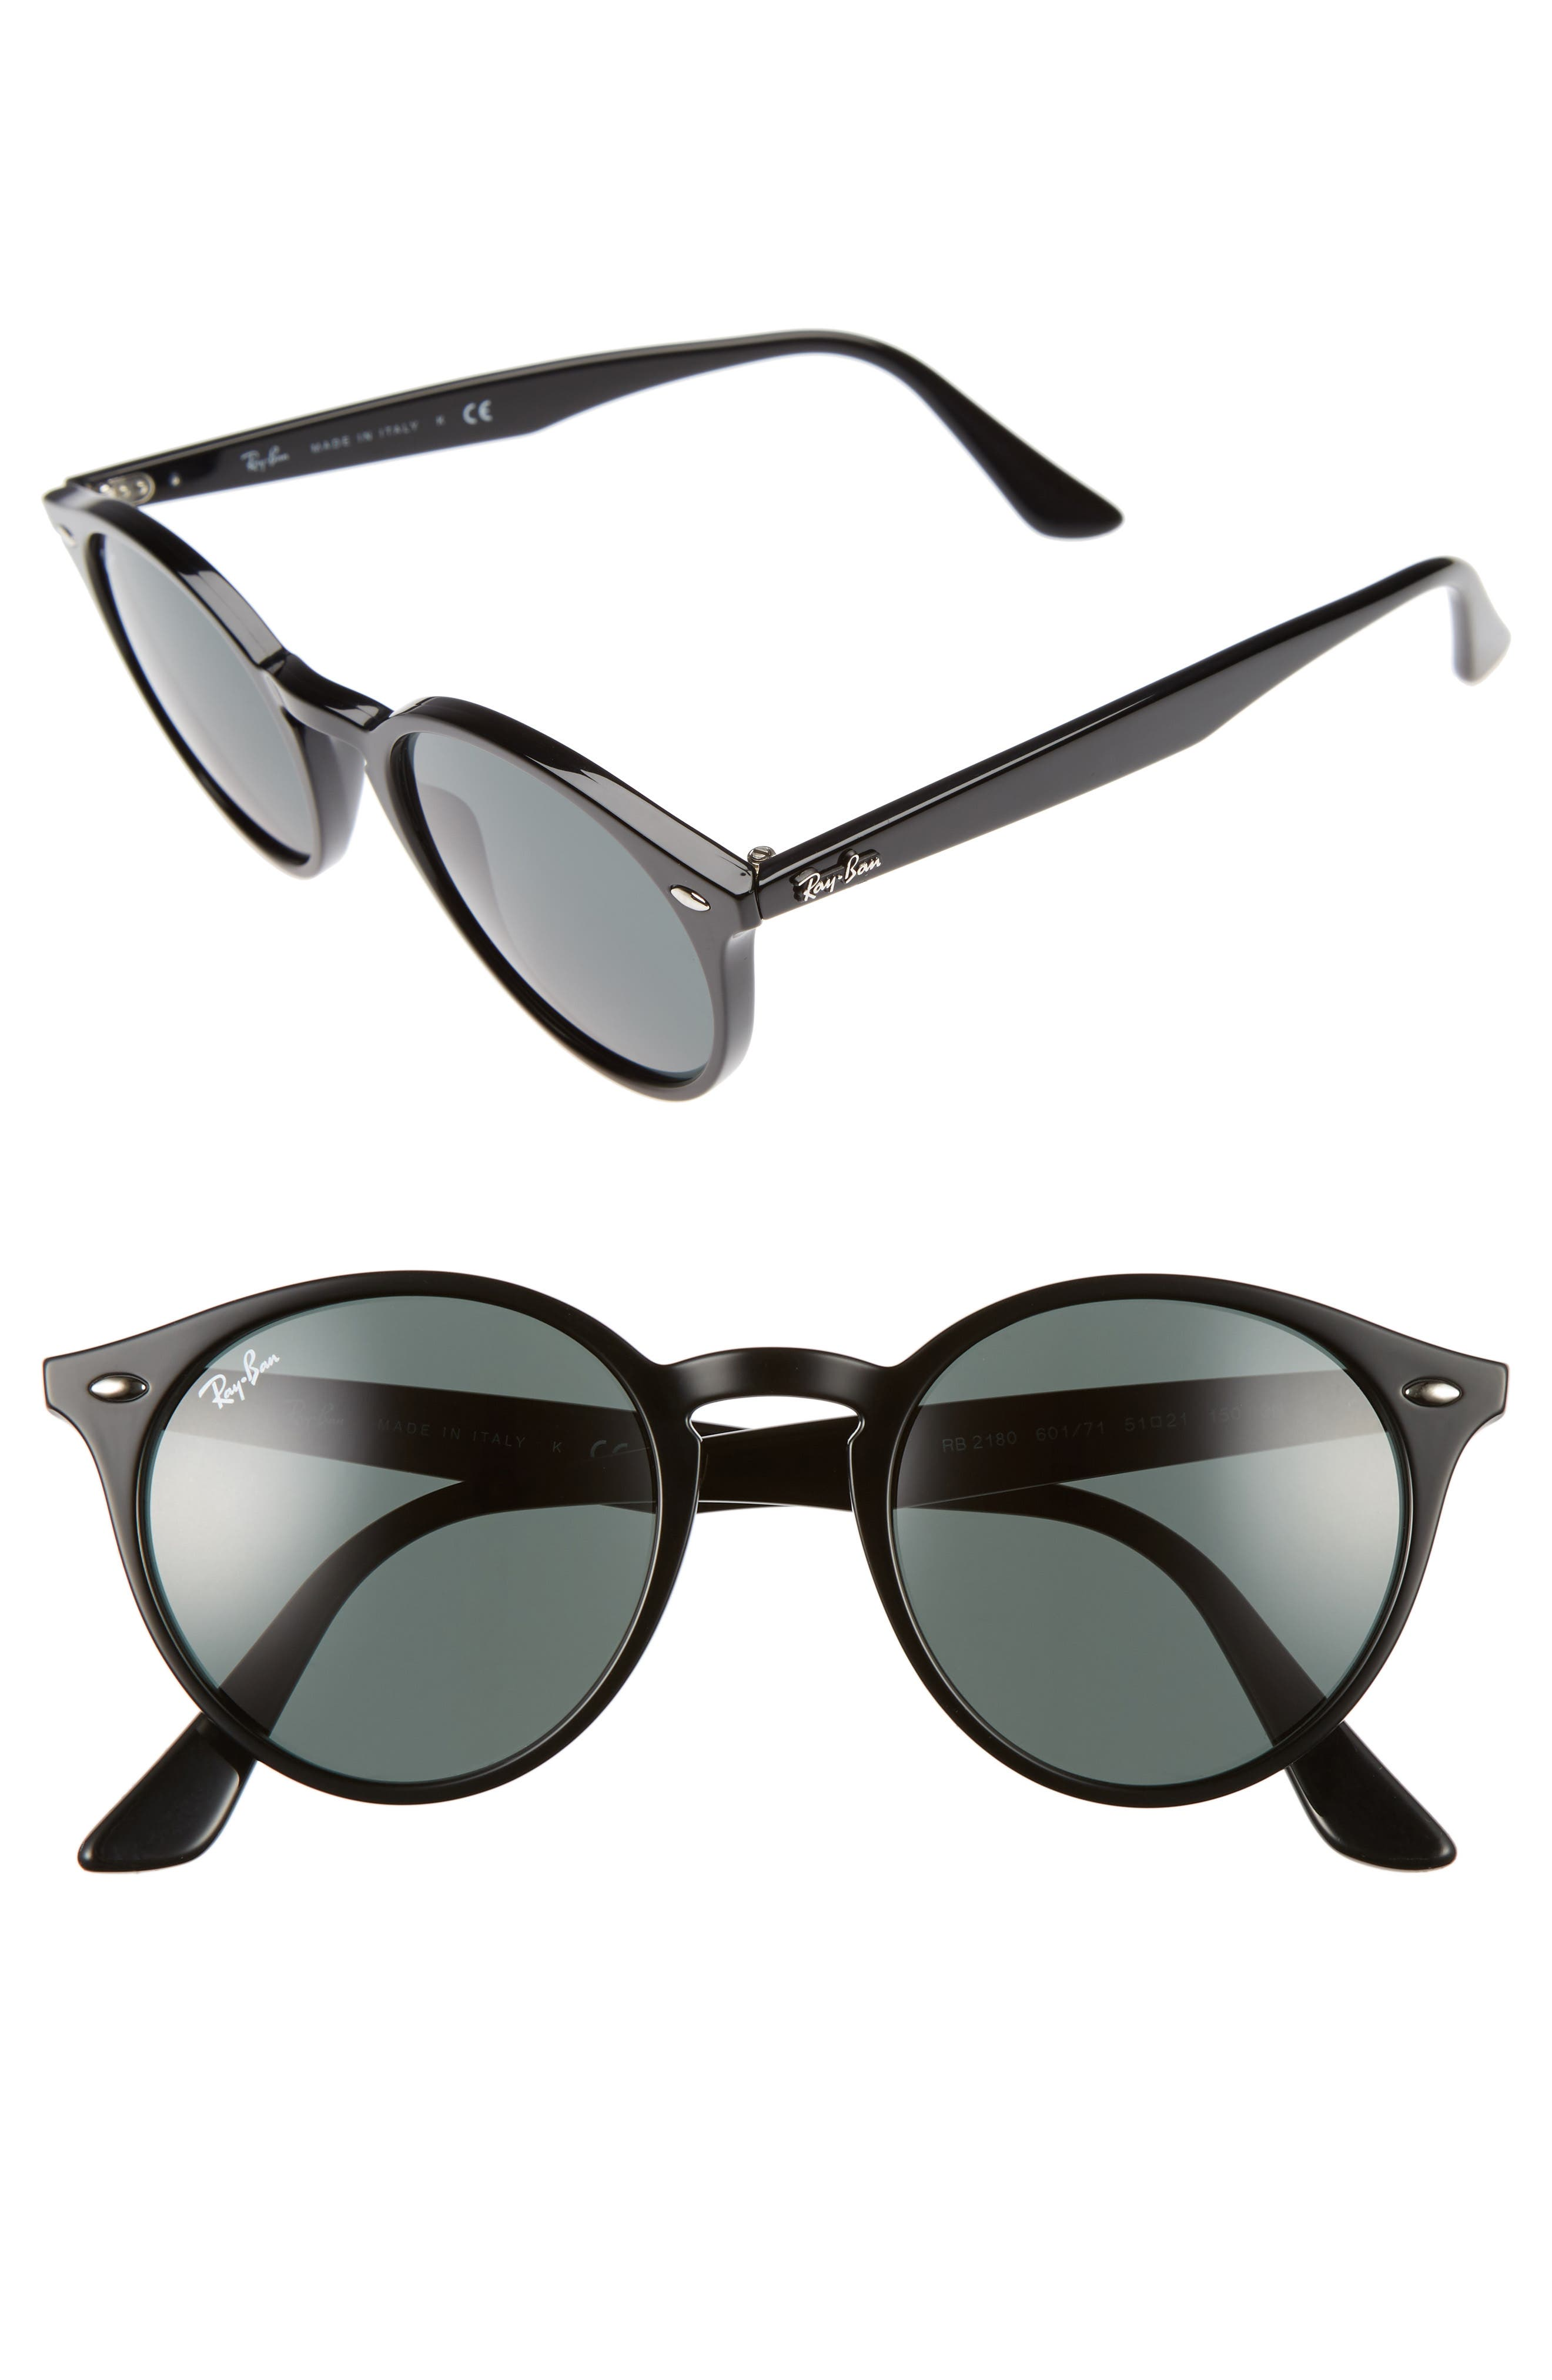 Highstreet 51mm Round Sunglasses,                             Main thumbnail 1, color,                             001